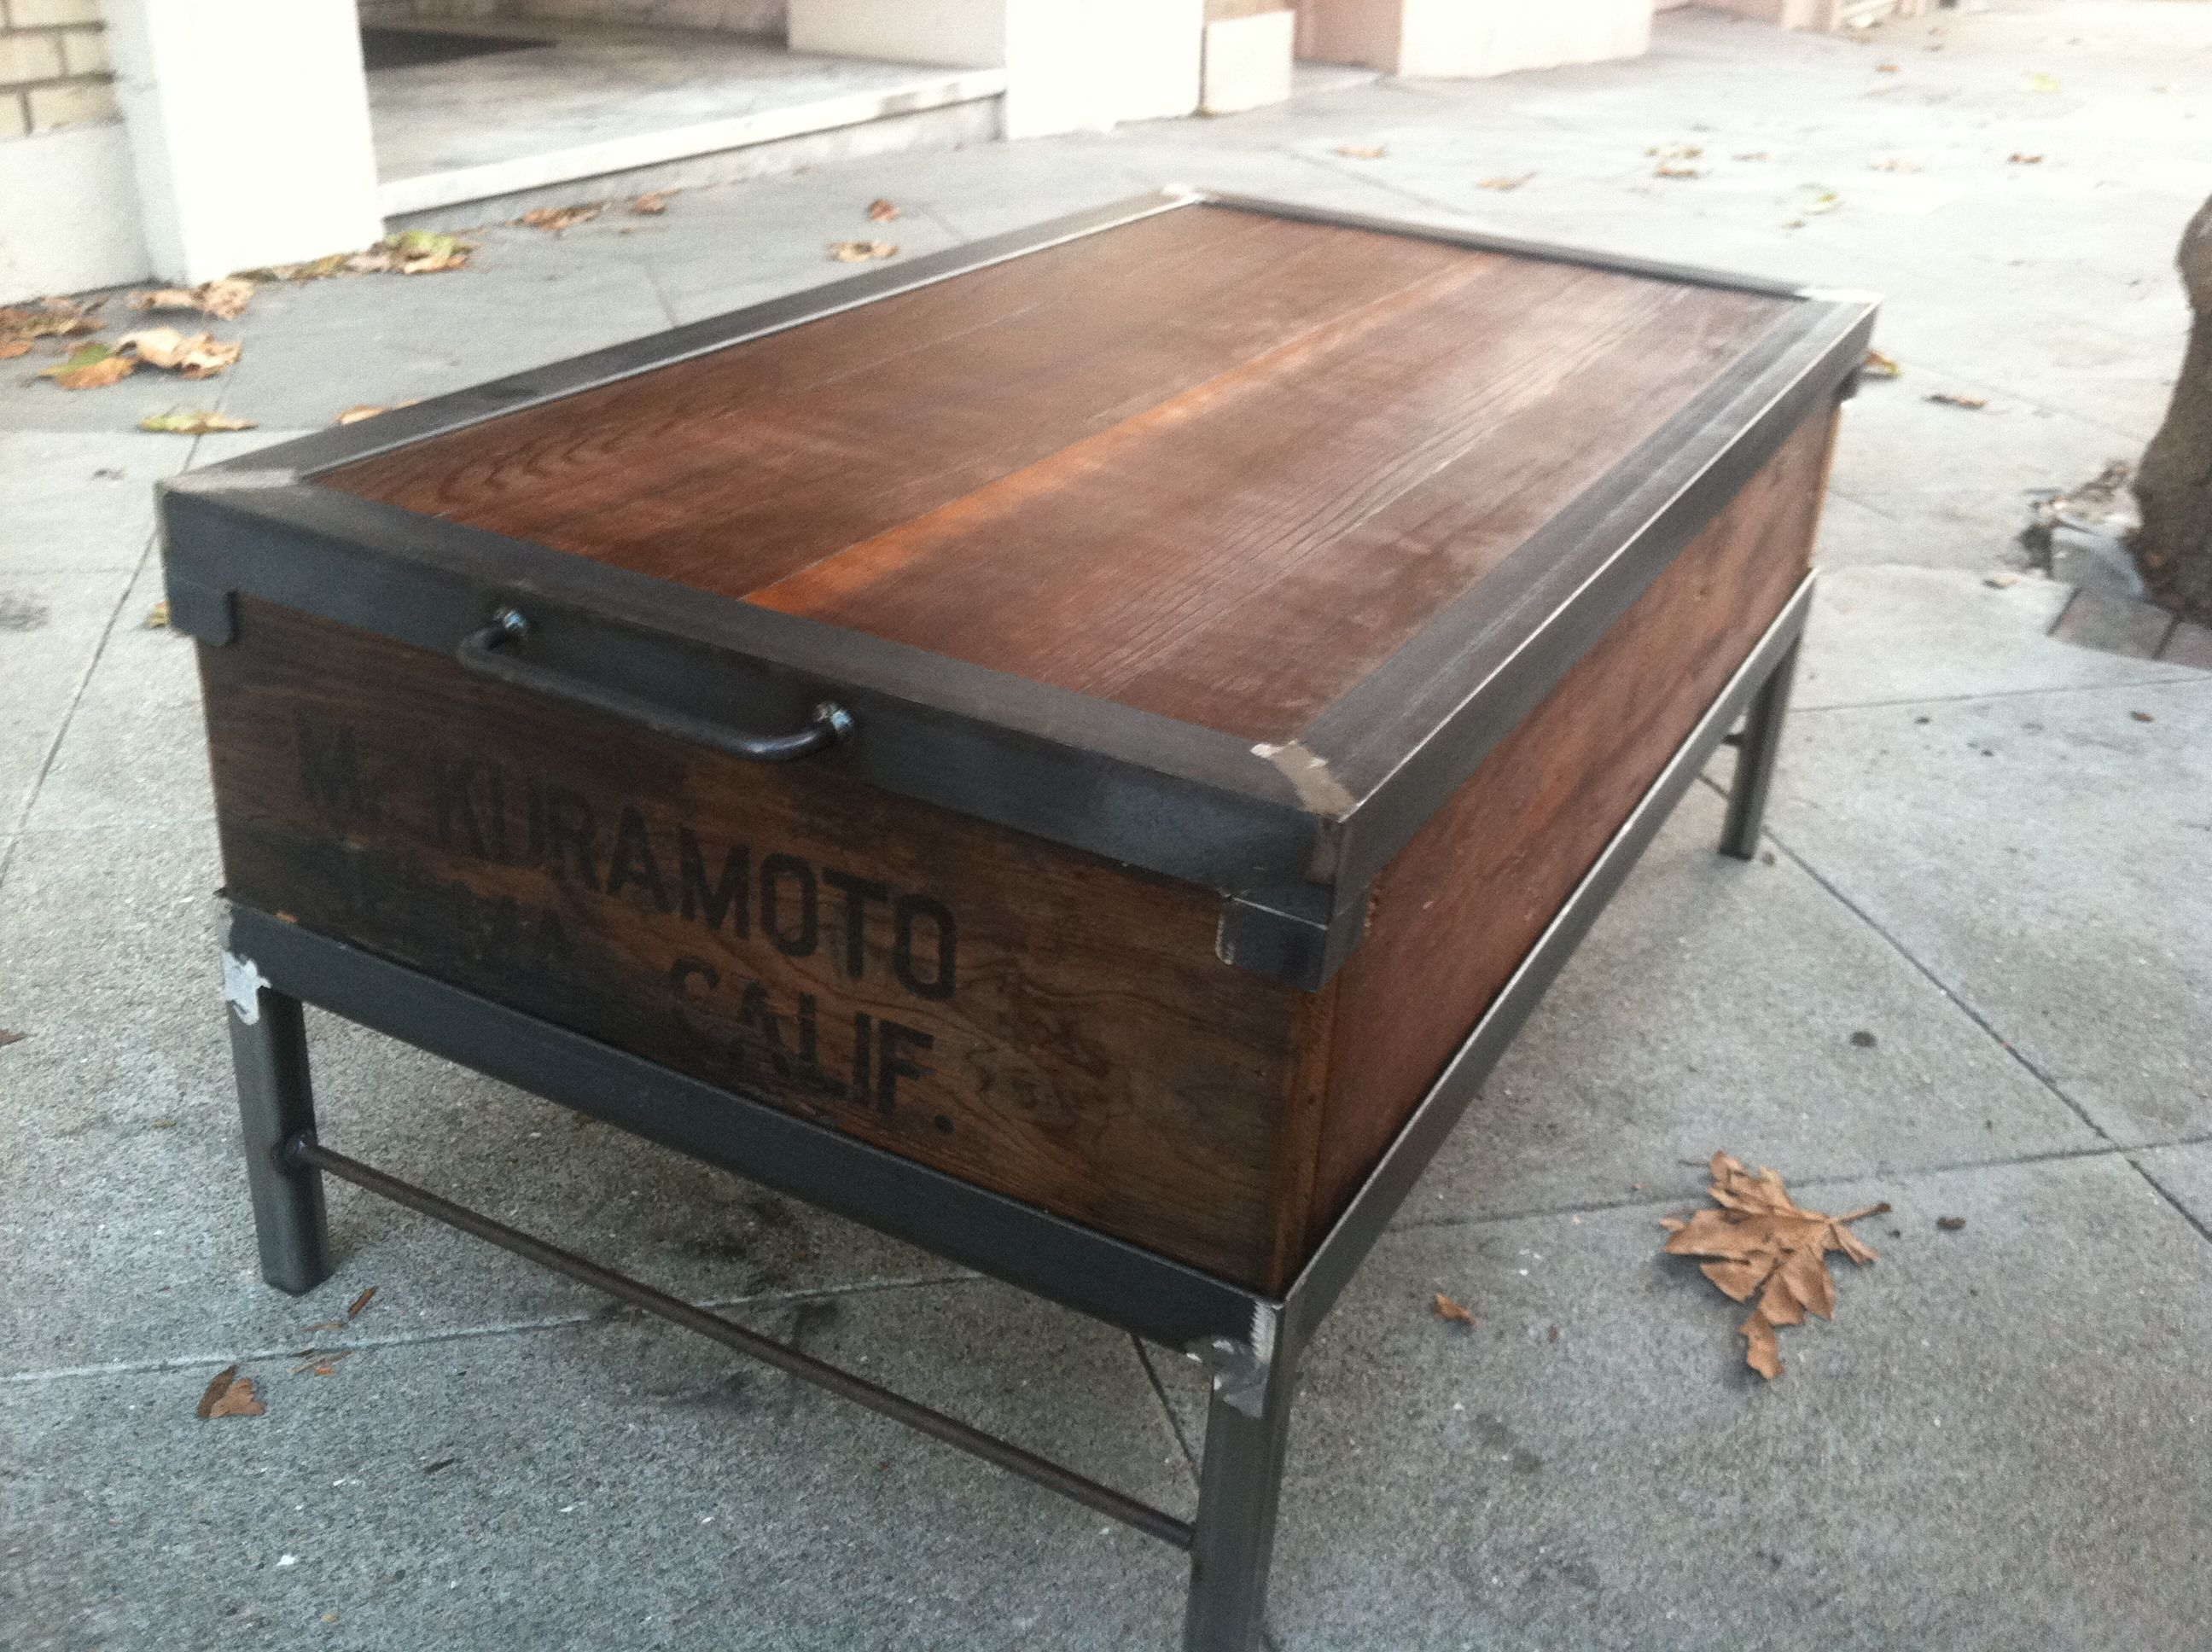 Steel Reclaimed Wood Coffee Table Farming Box From